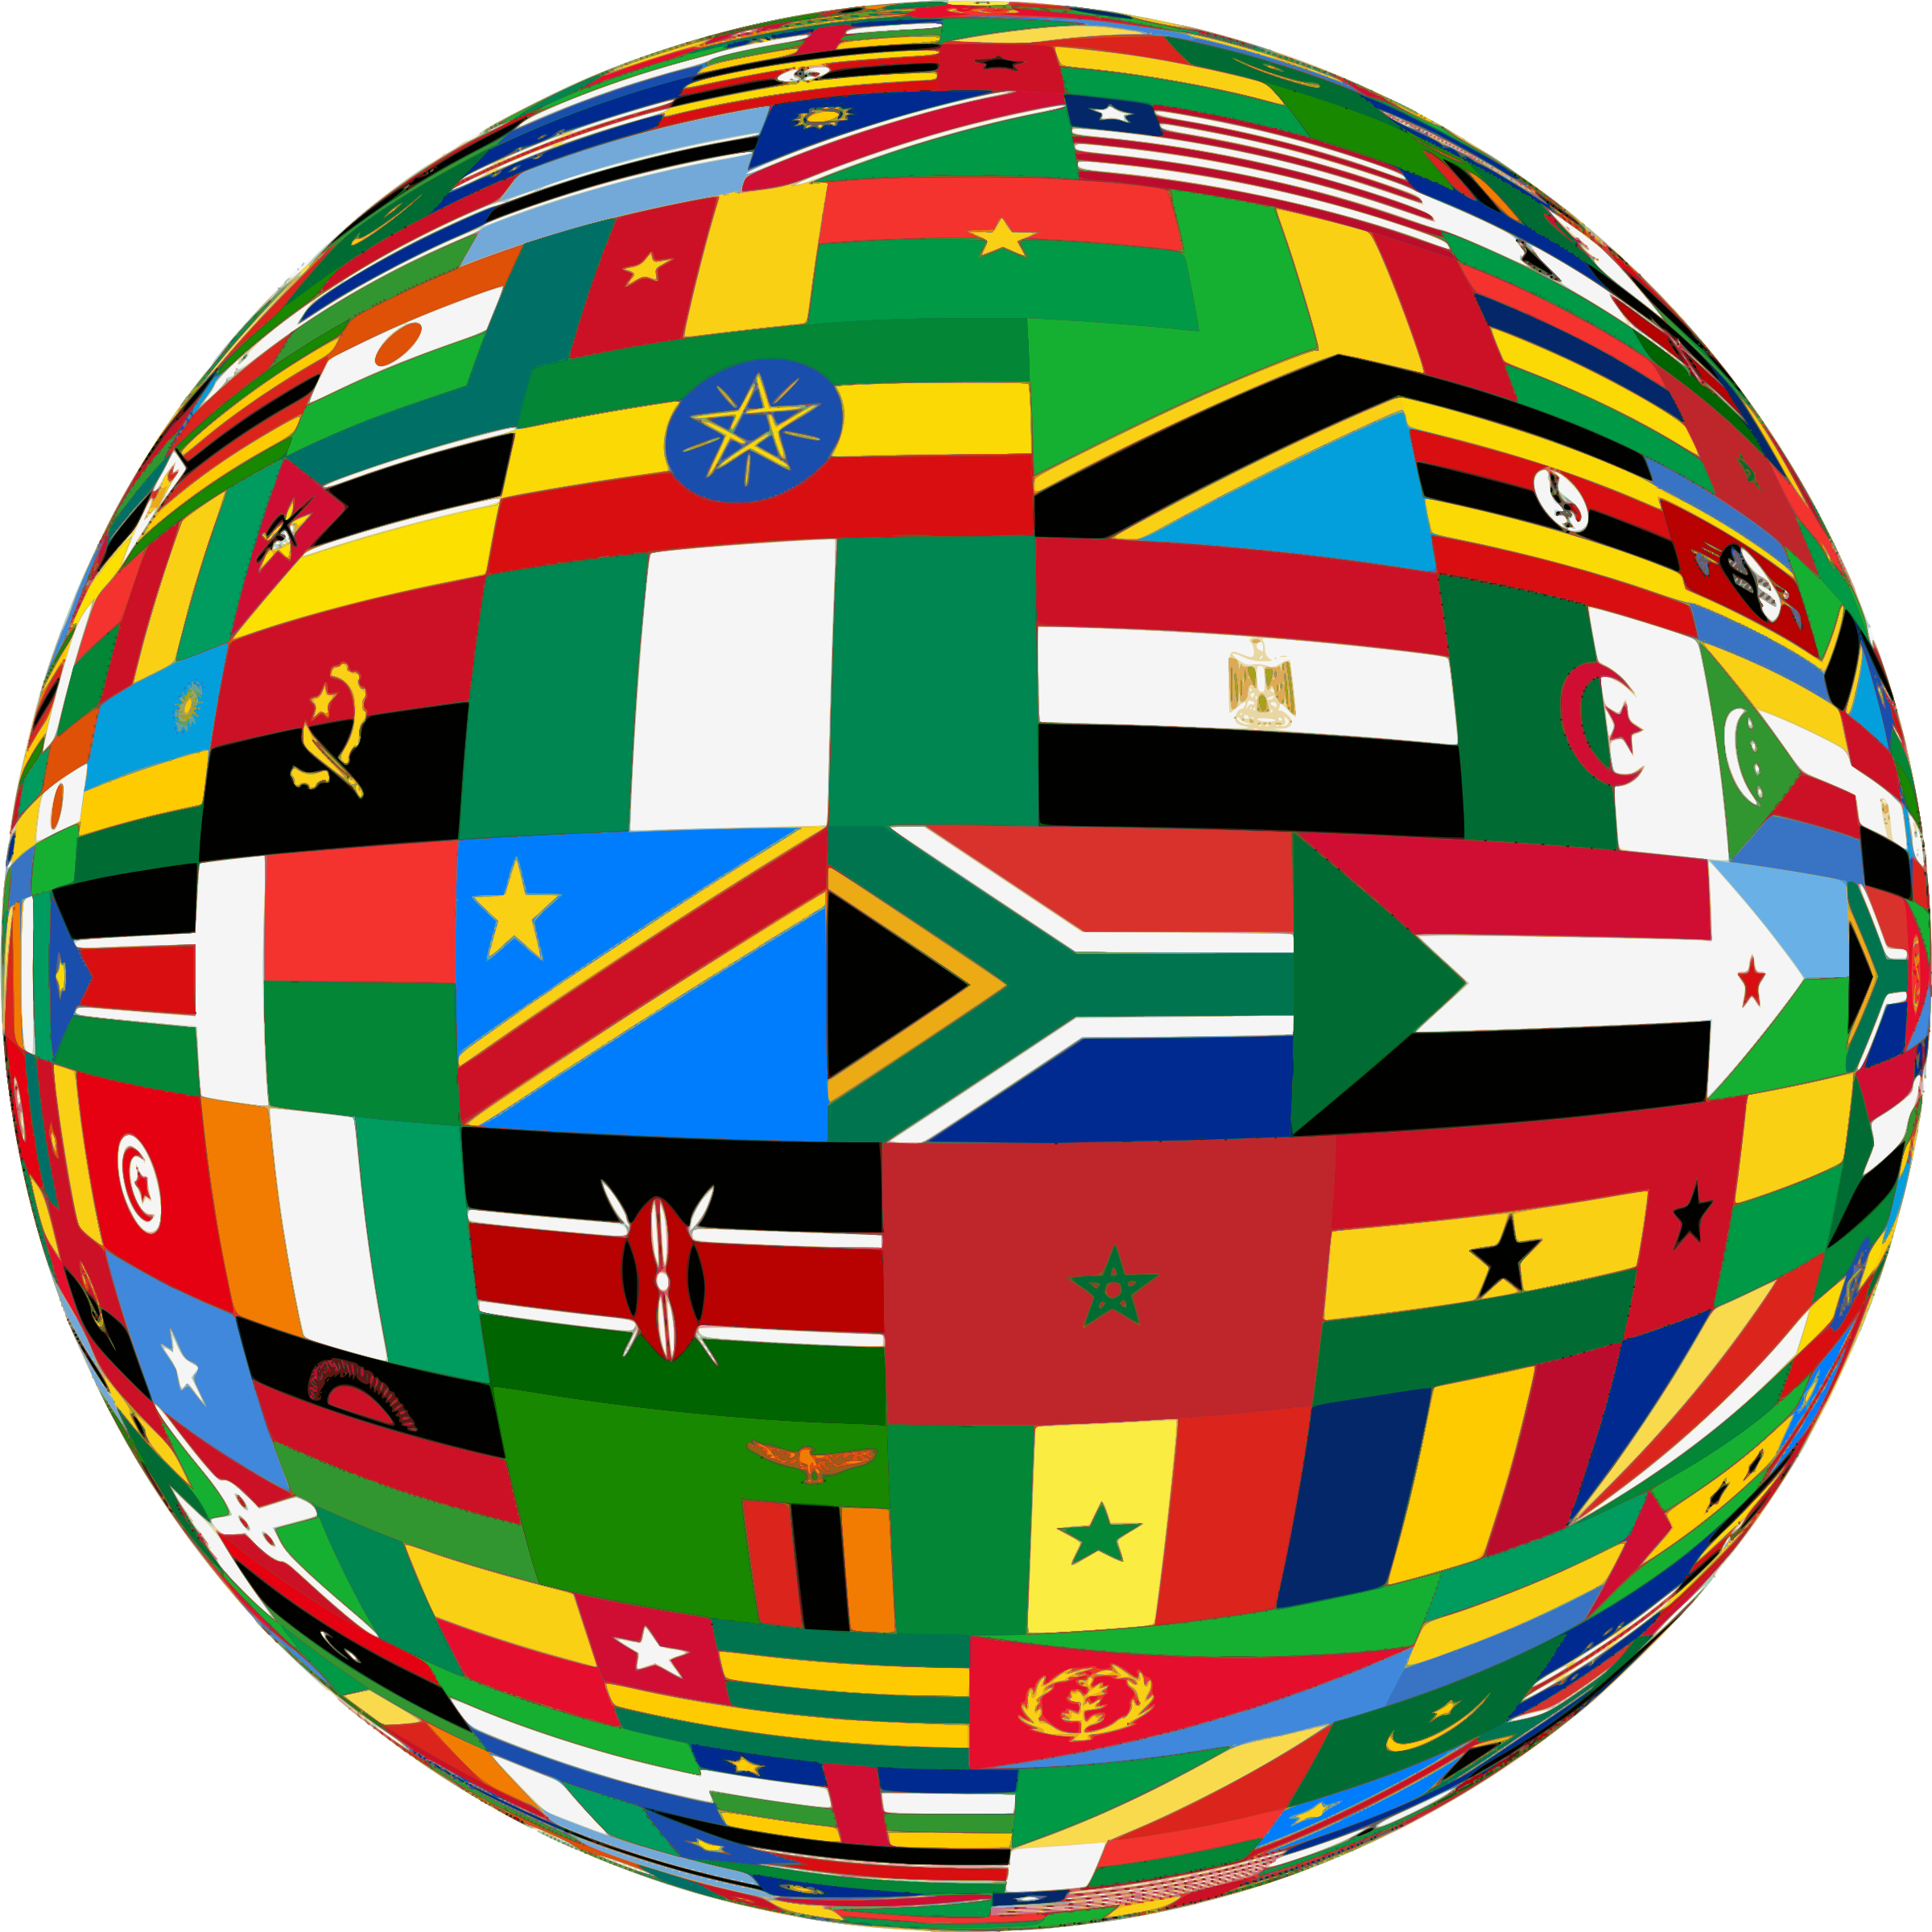 Africa flags sphere by Firkin